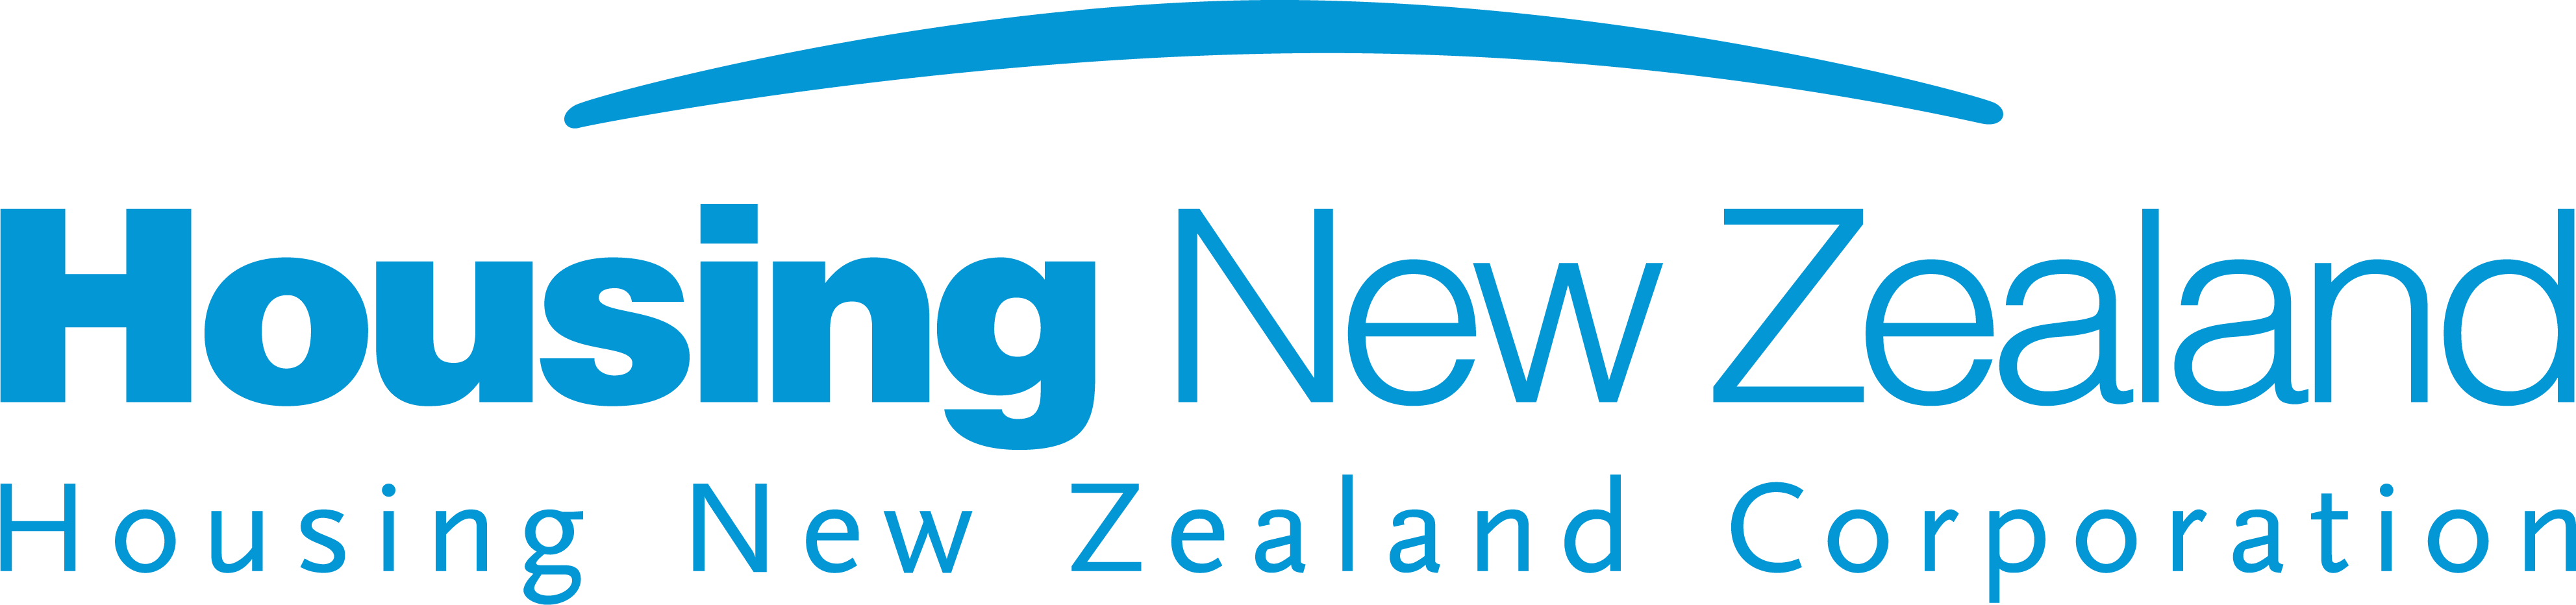 Housing_New_Zealand_Corporation_Logo_2017